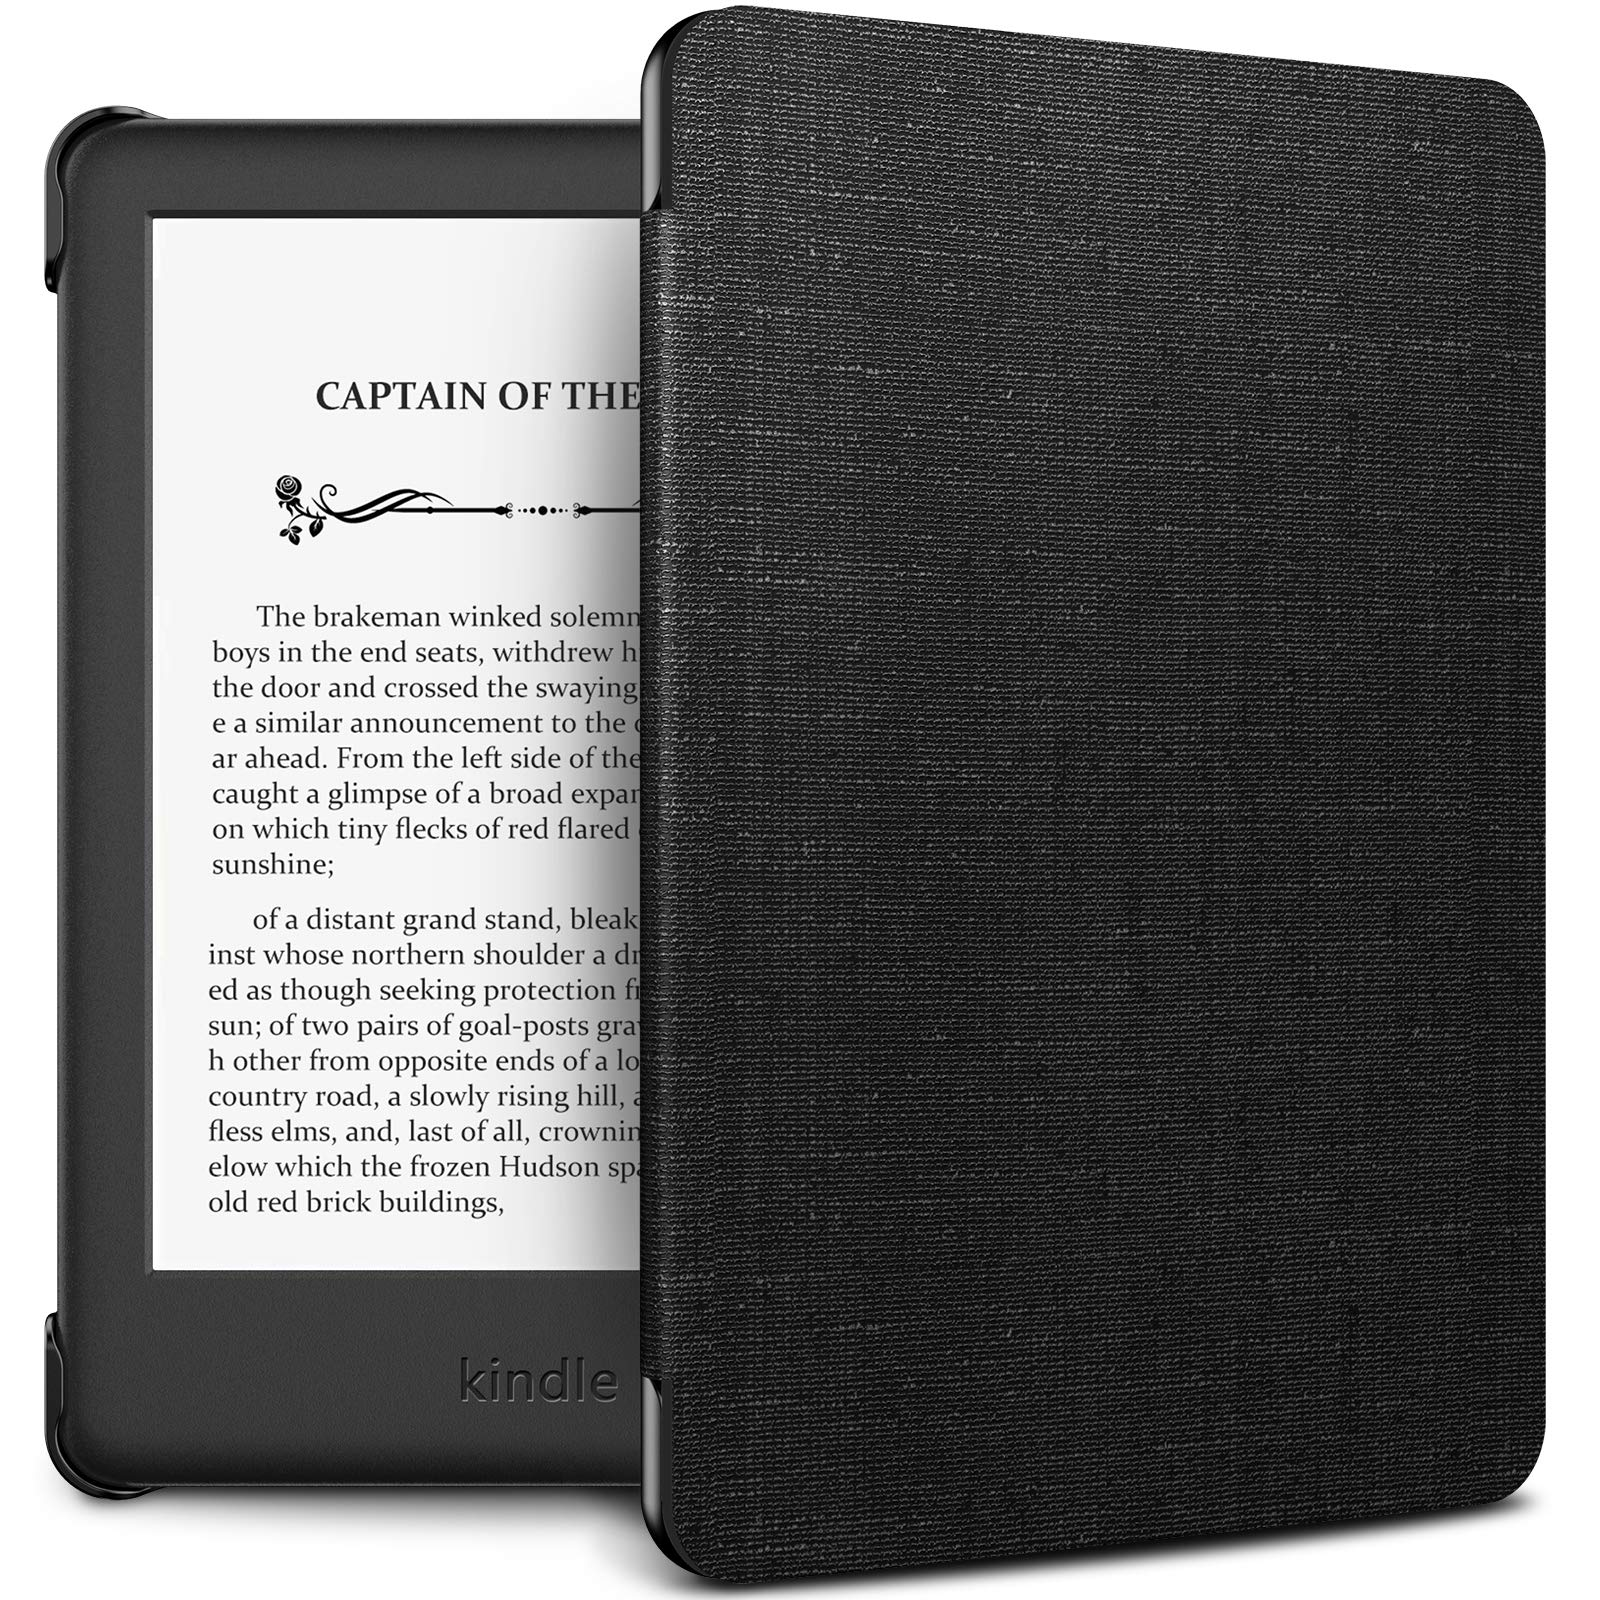 INFILAND Kindle 10th Gen 2019 Case, Shell Case Cover Auto Wake/Sleep Compatible with All-New Kindle 10th Generation 2019 Release Only, Black